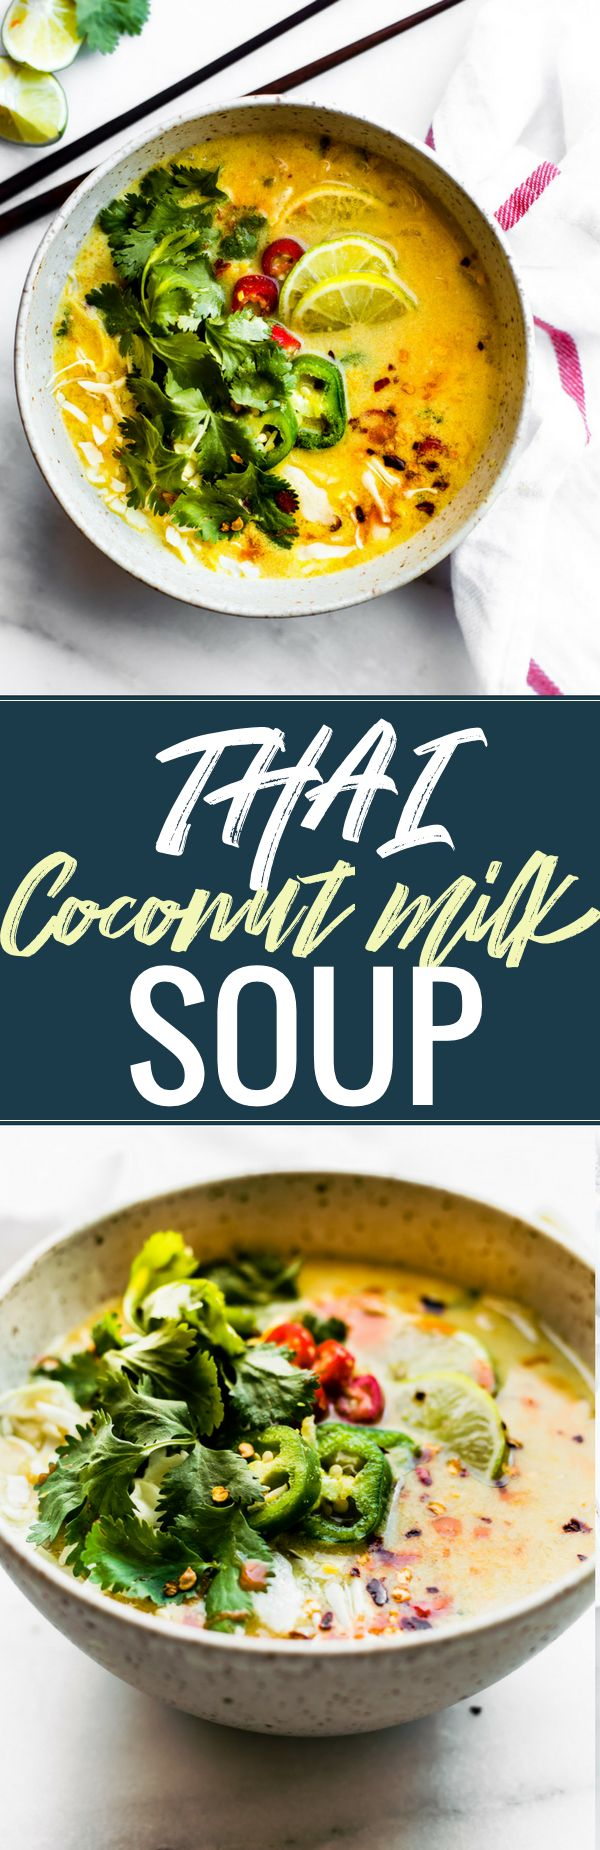 hai Coconut Milk Cabbage soup packed with flavor and nourishment! A Thai Coconut Paleo soup recipe made with real ingredients; coconut milk, cabbage, lemongrass, broth, curry, and Thai Chili peppers. It is quick to make, plus it keeps you warm during winter! Vegan and whole 30 friendly.